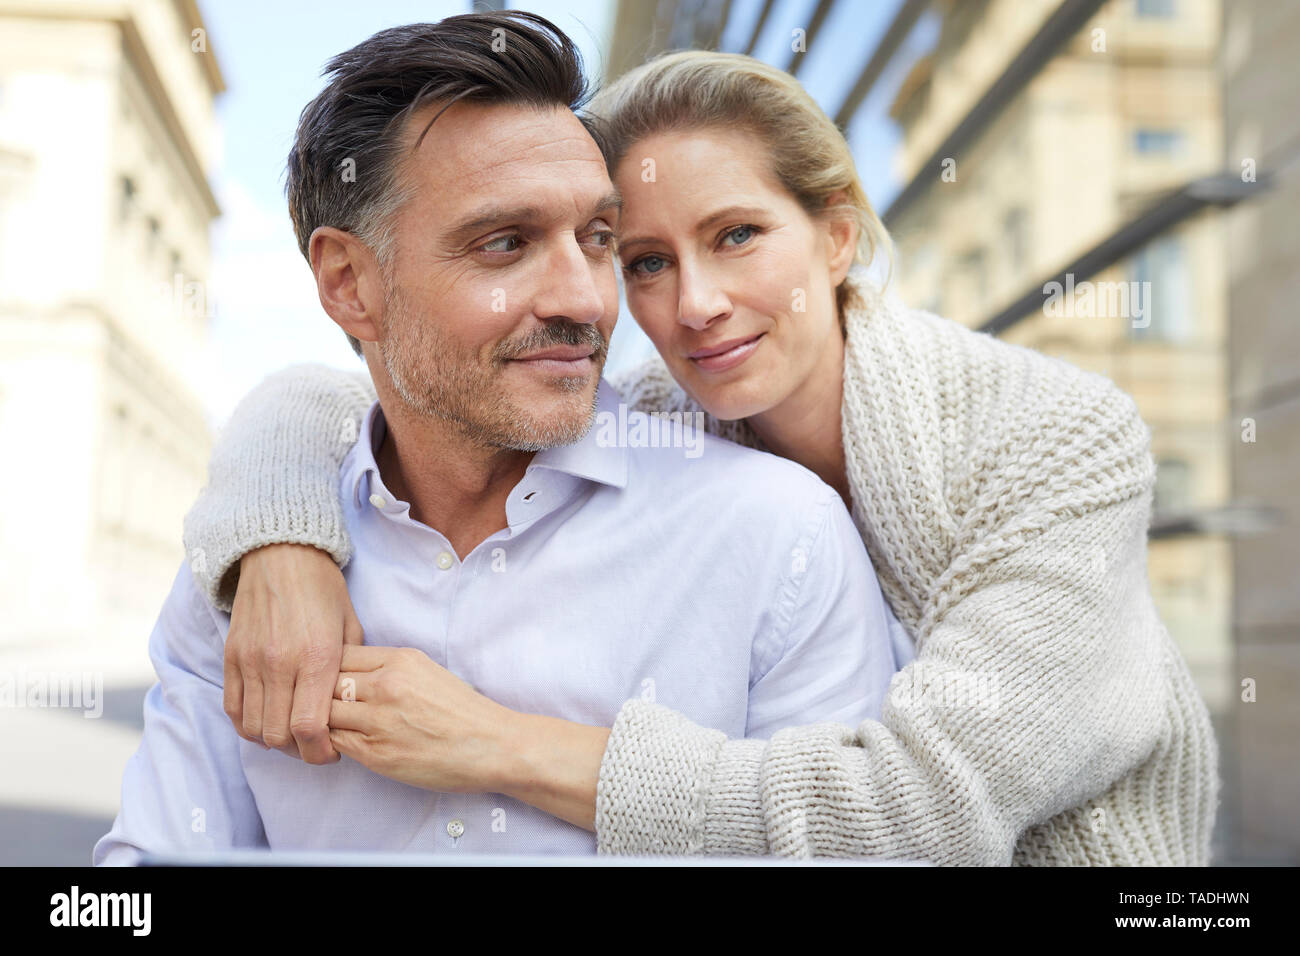 Portrait of smiling affectionate couple embracing outdoors - Stock Image